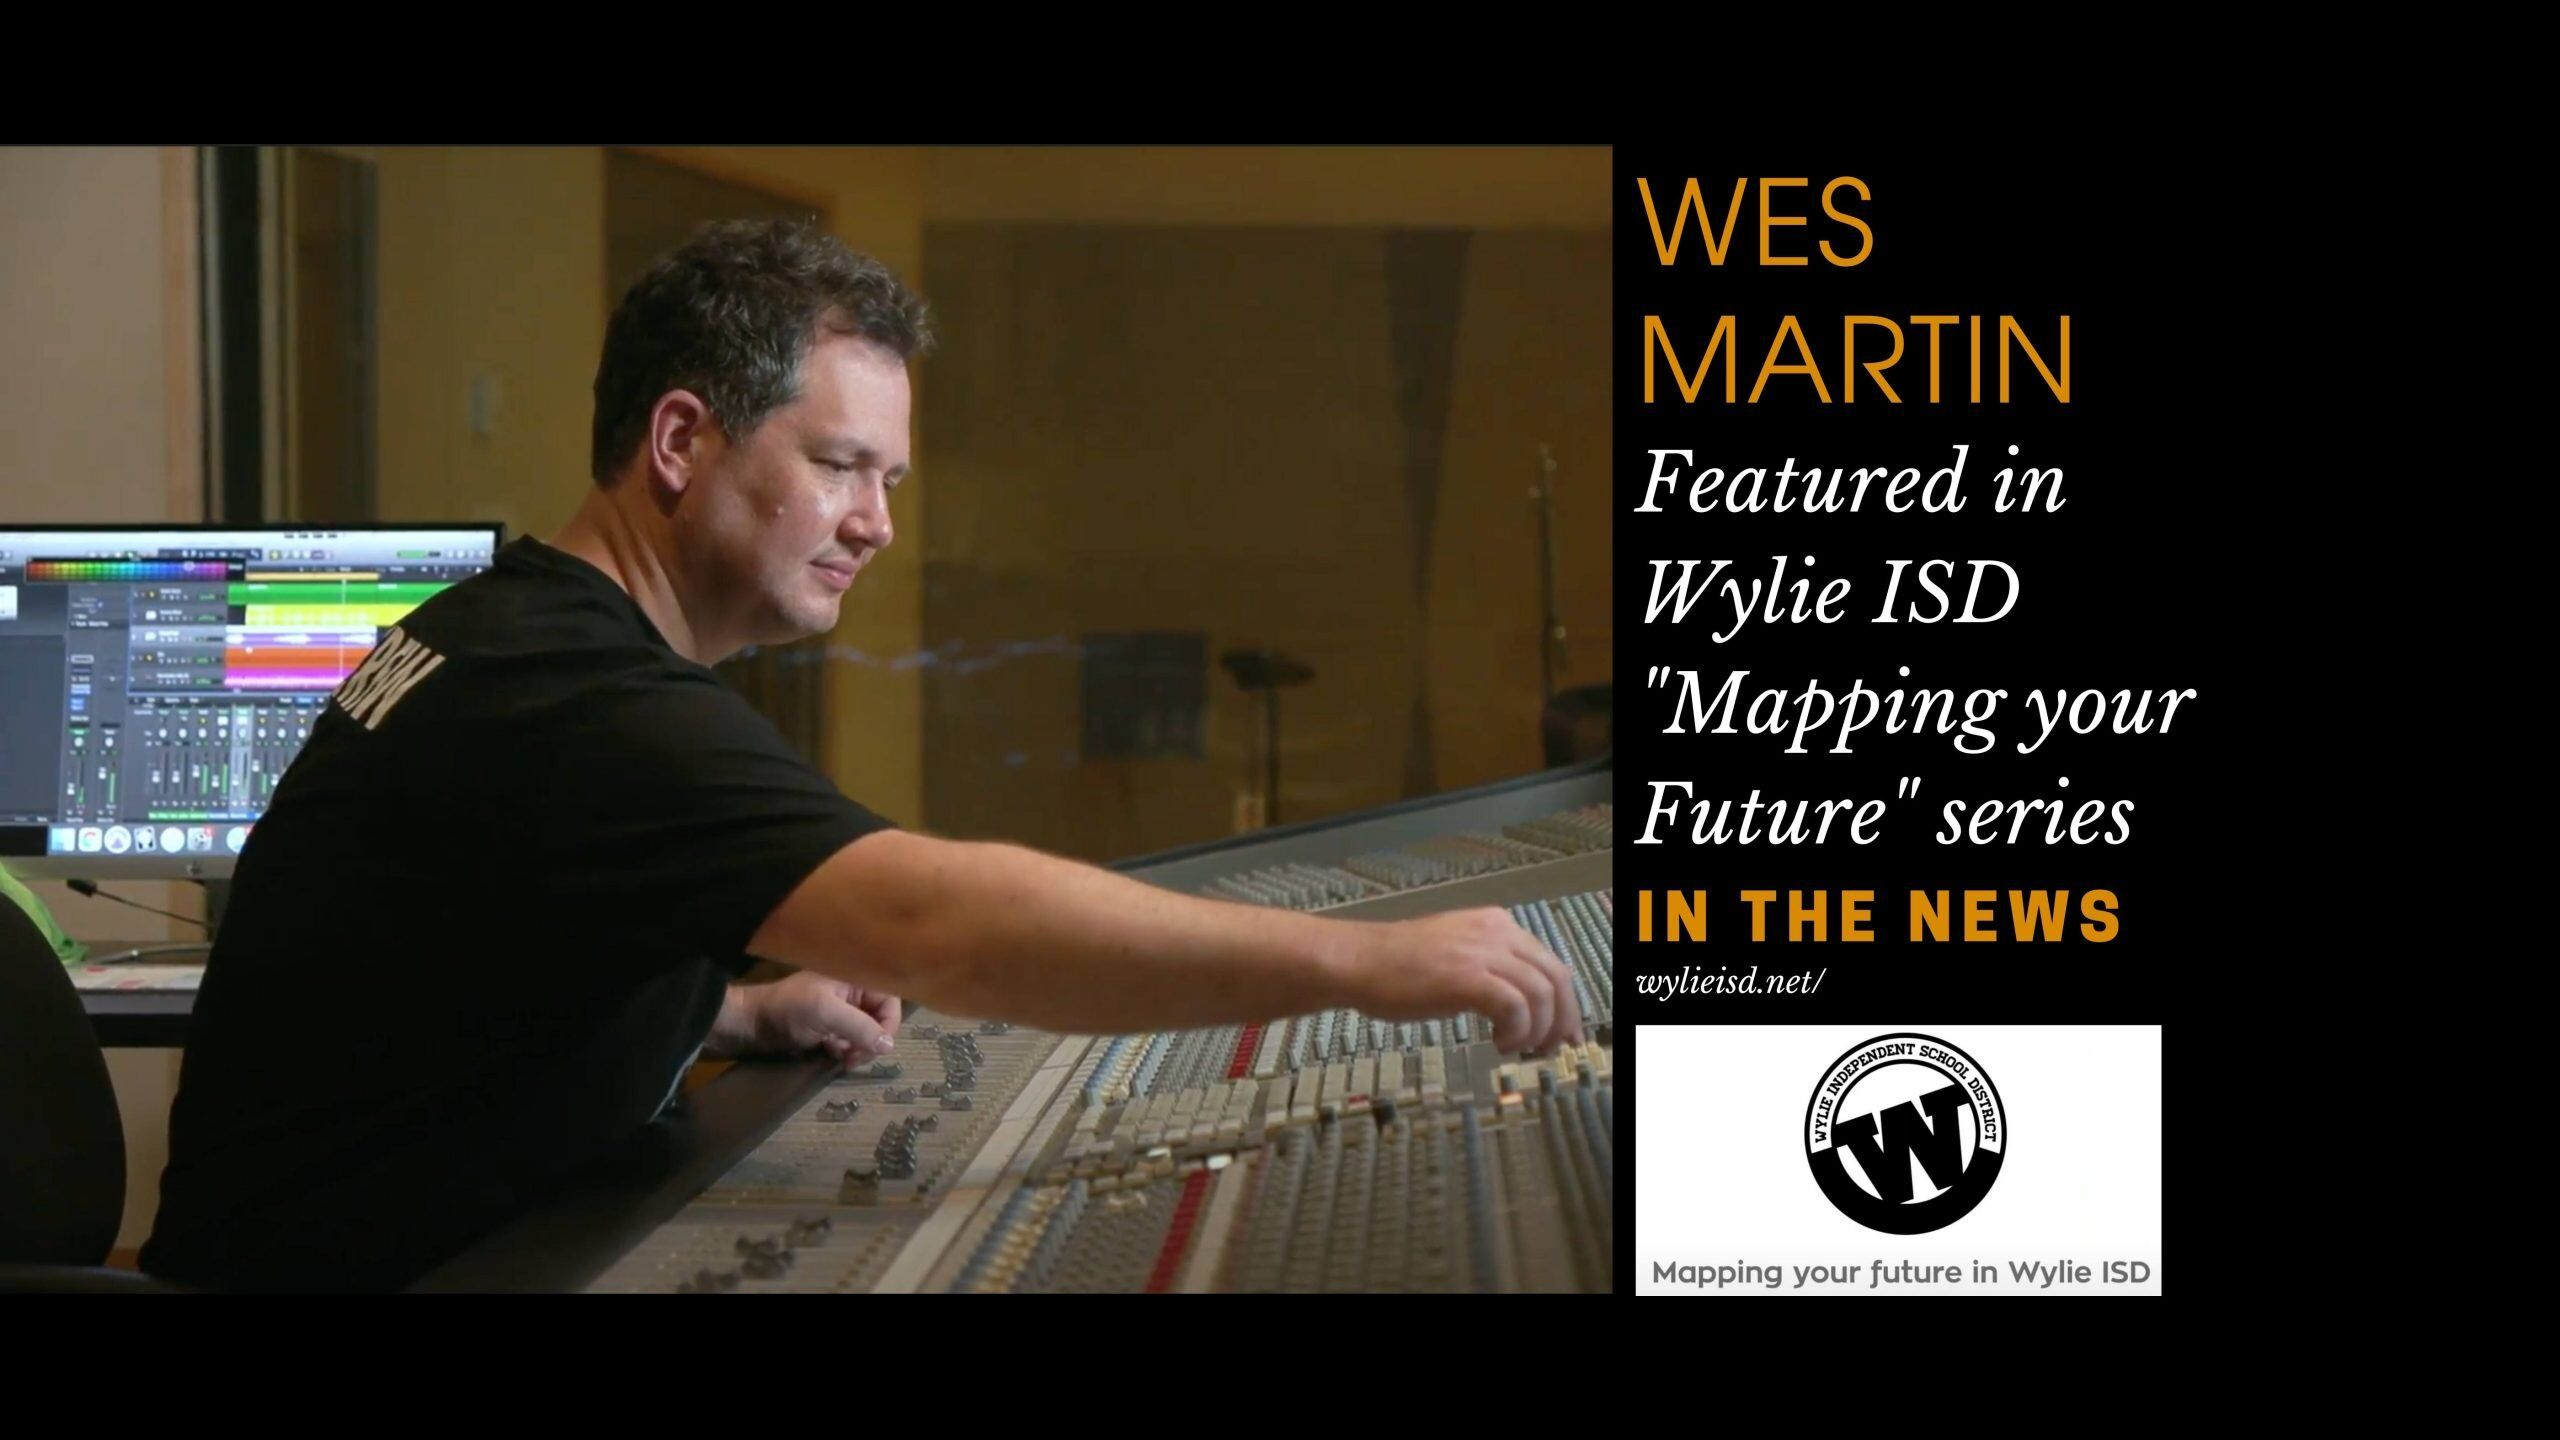 Wes Martin Music Producer